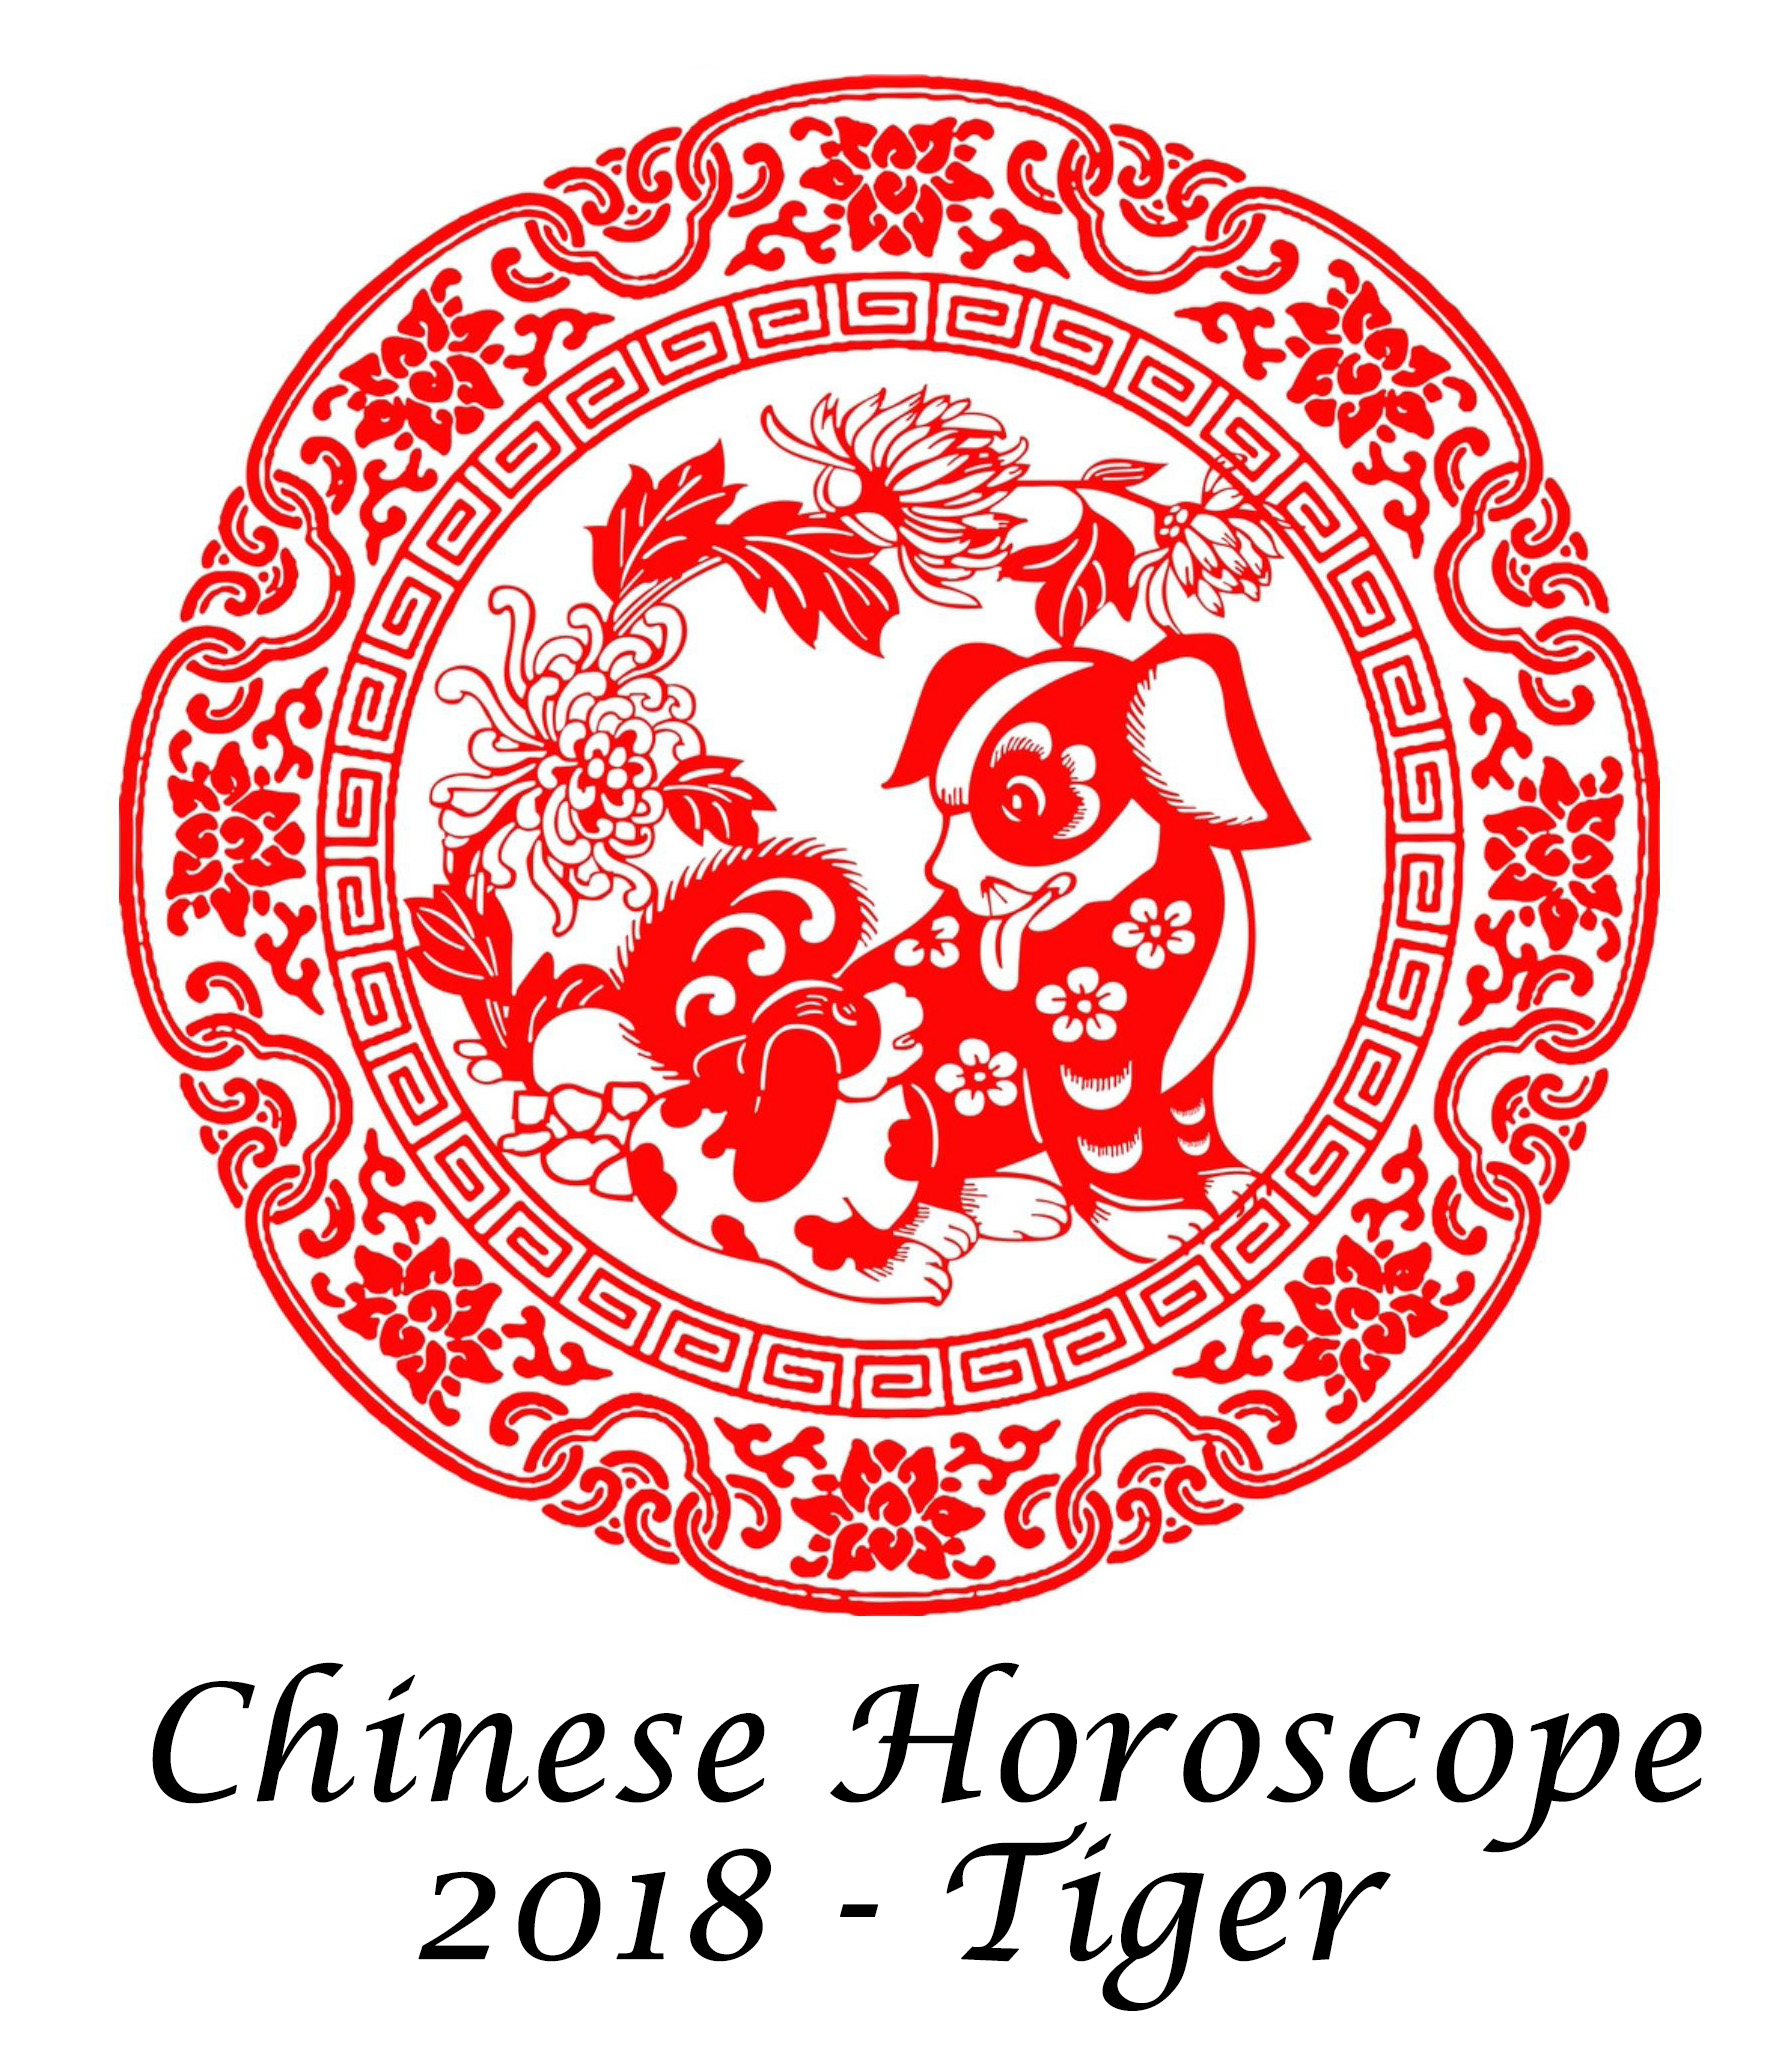 Chinese Horoscope Tiger 2018